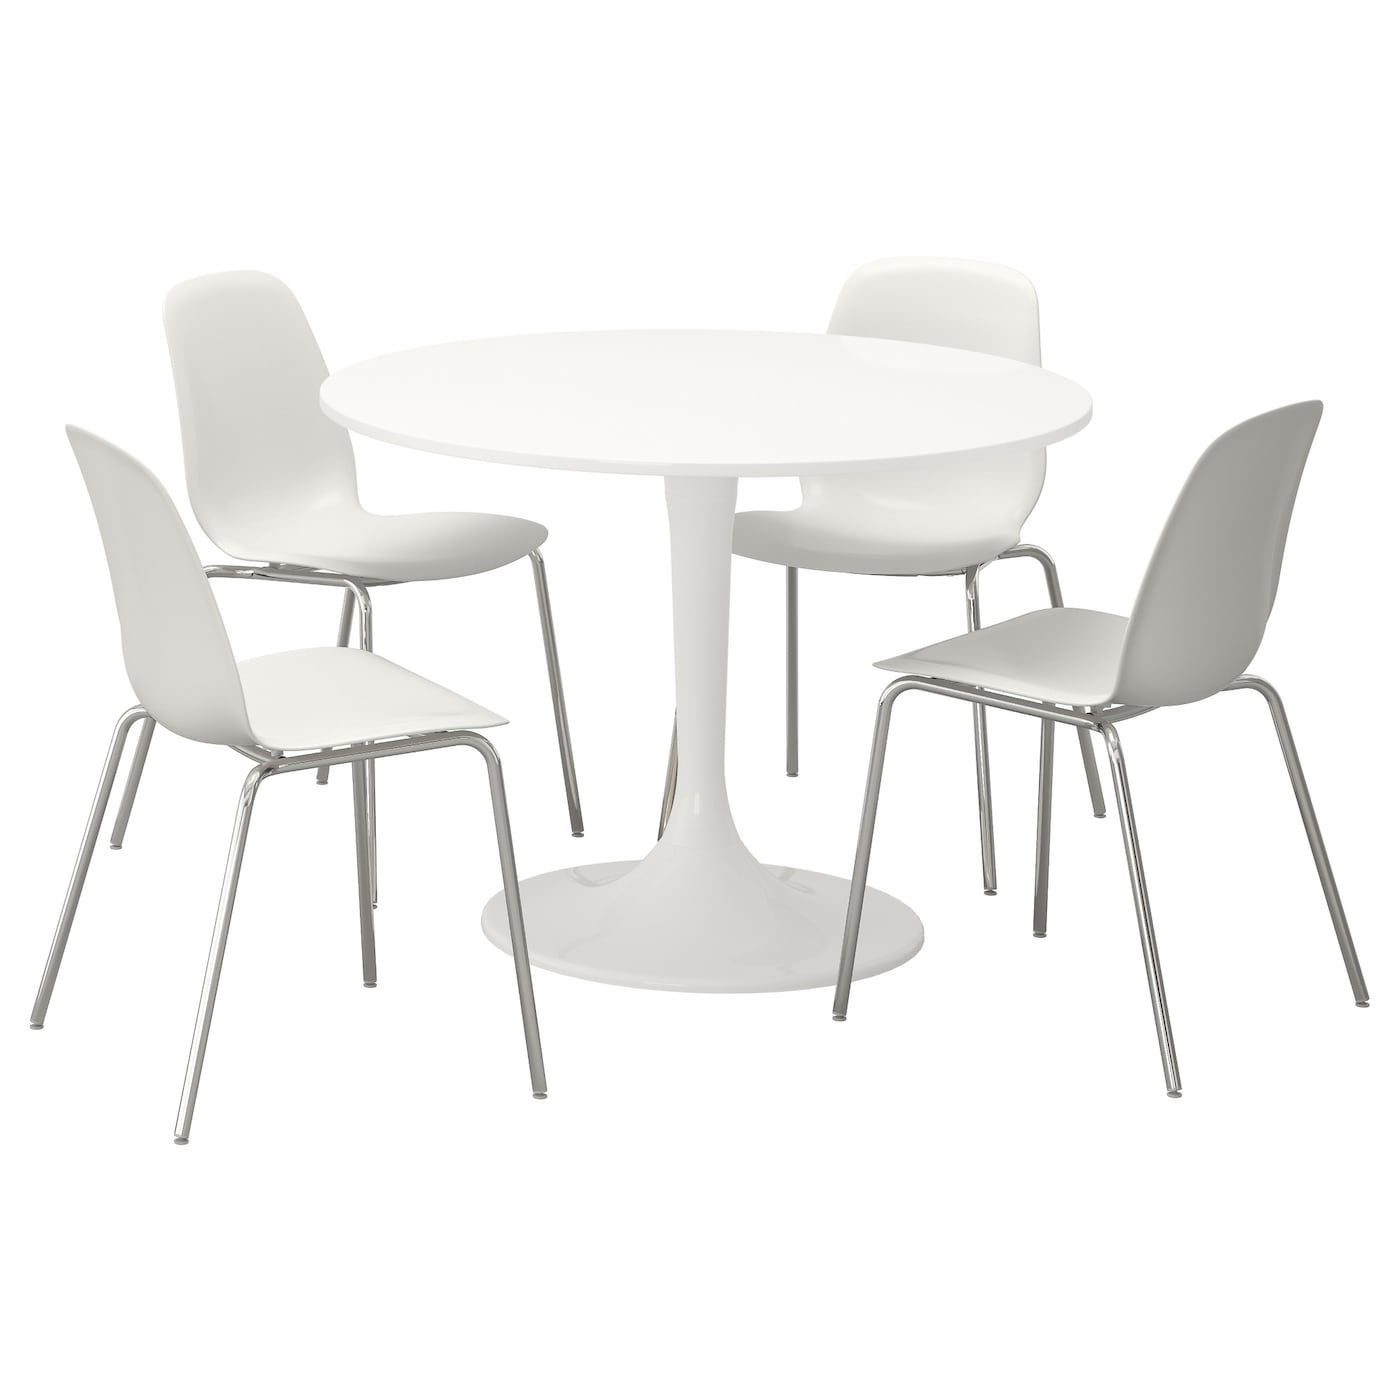 docksta leifarne table and 4 chairs white white 105 cm ikea. Black Bedroom Furniture Sets. Home Design Ideas